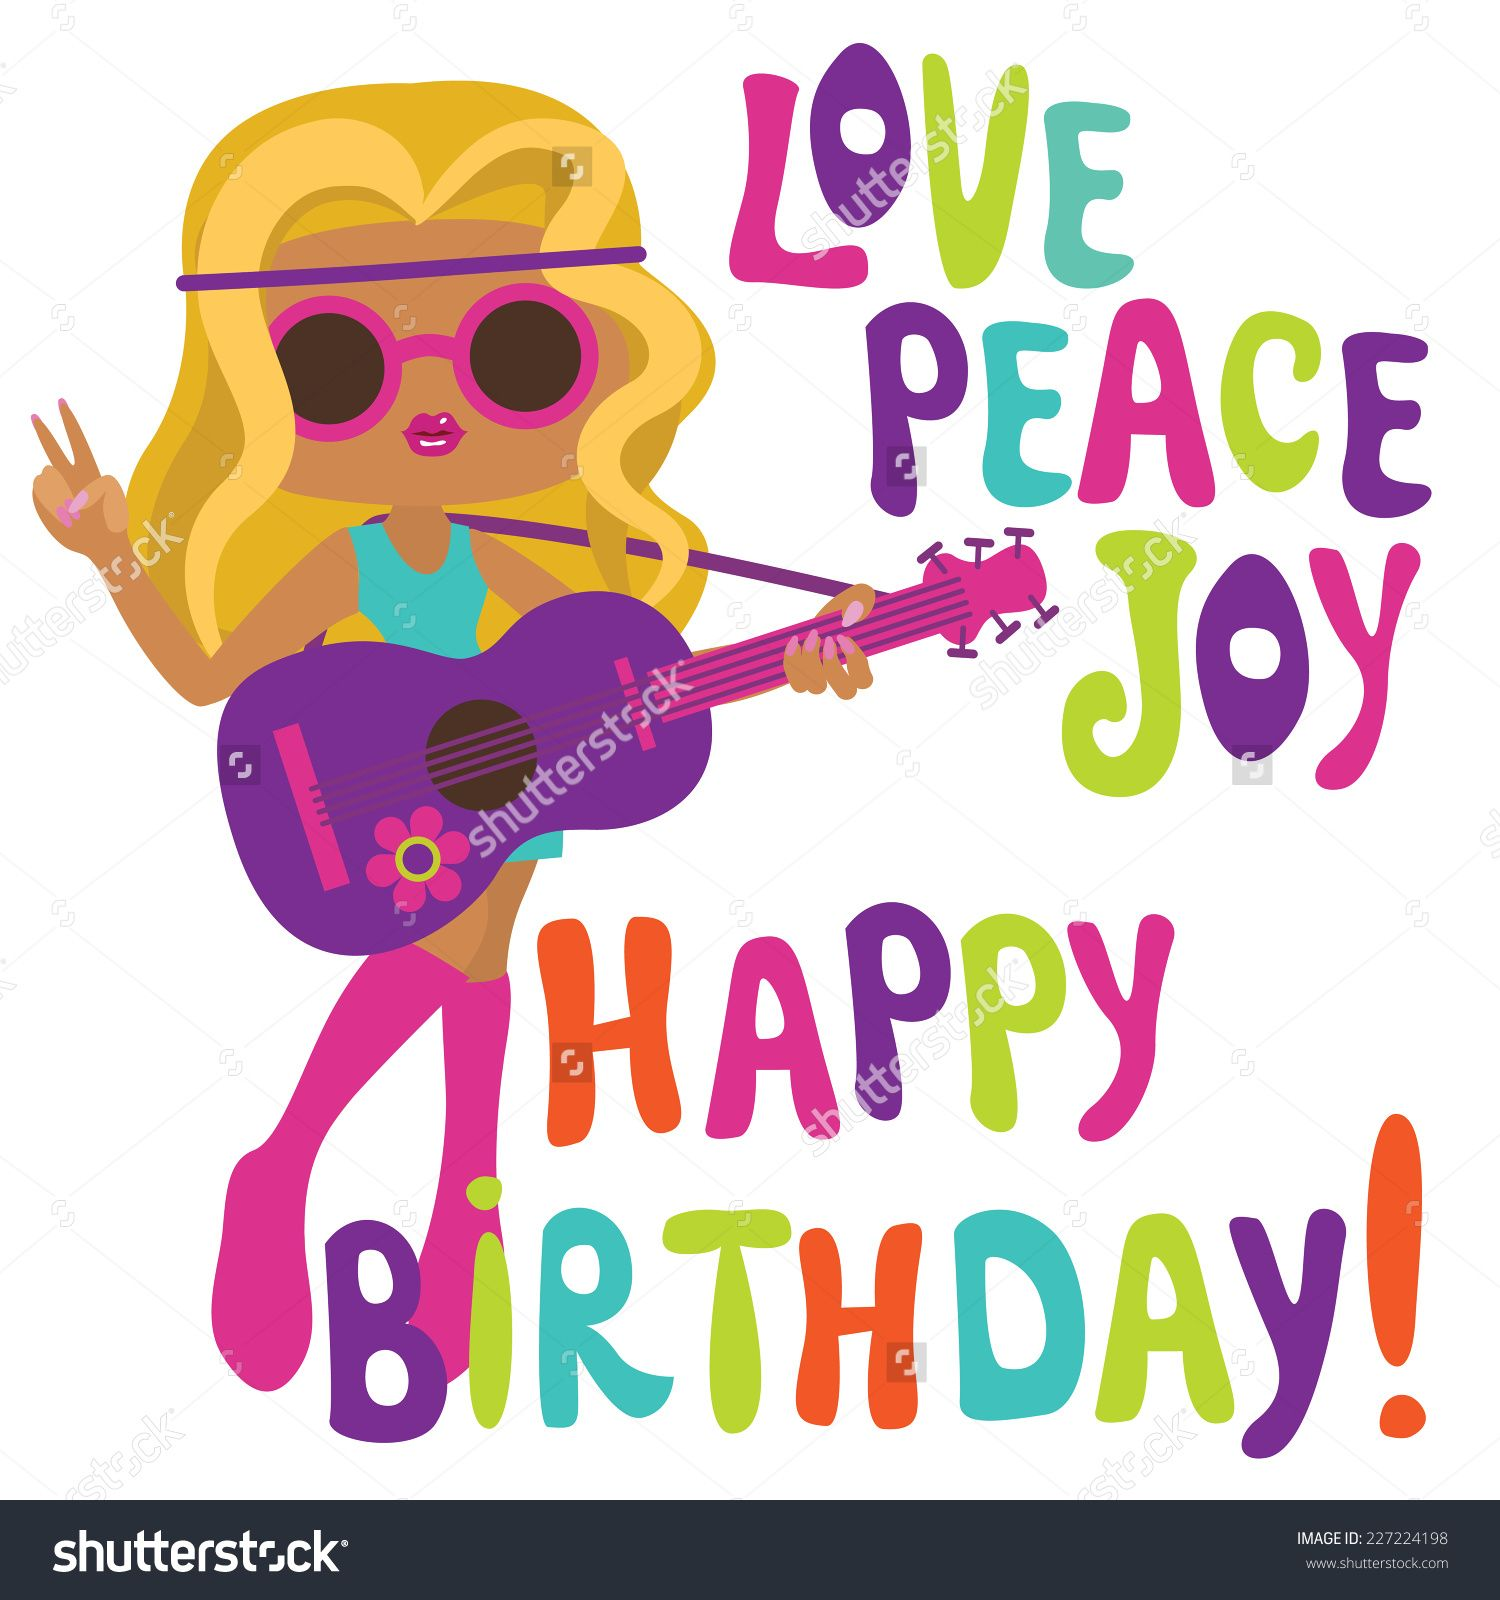 10 Best images about Happy Birthday on Pinterest